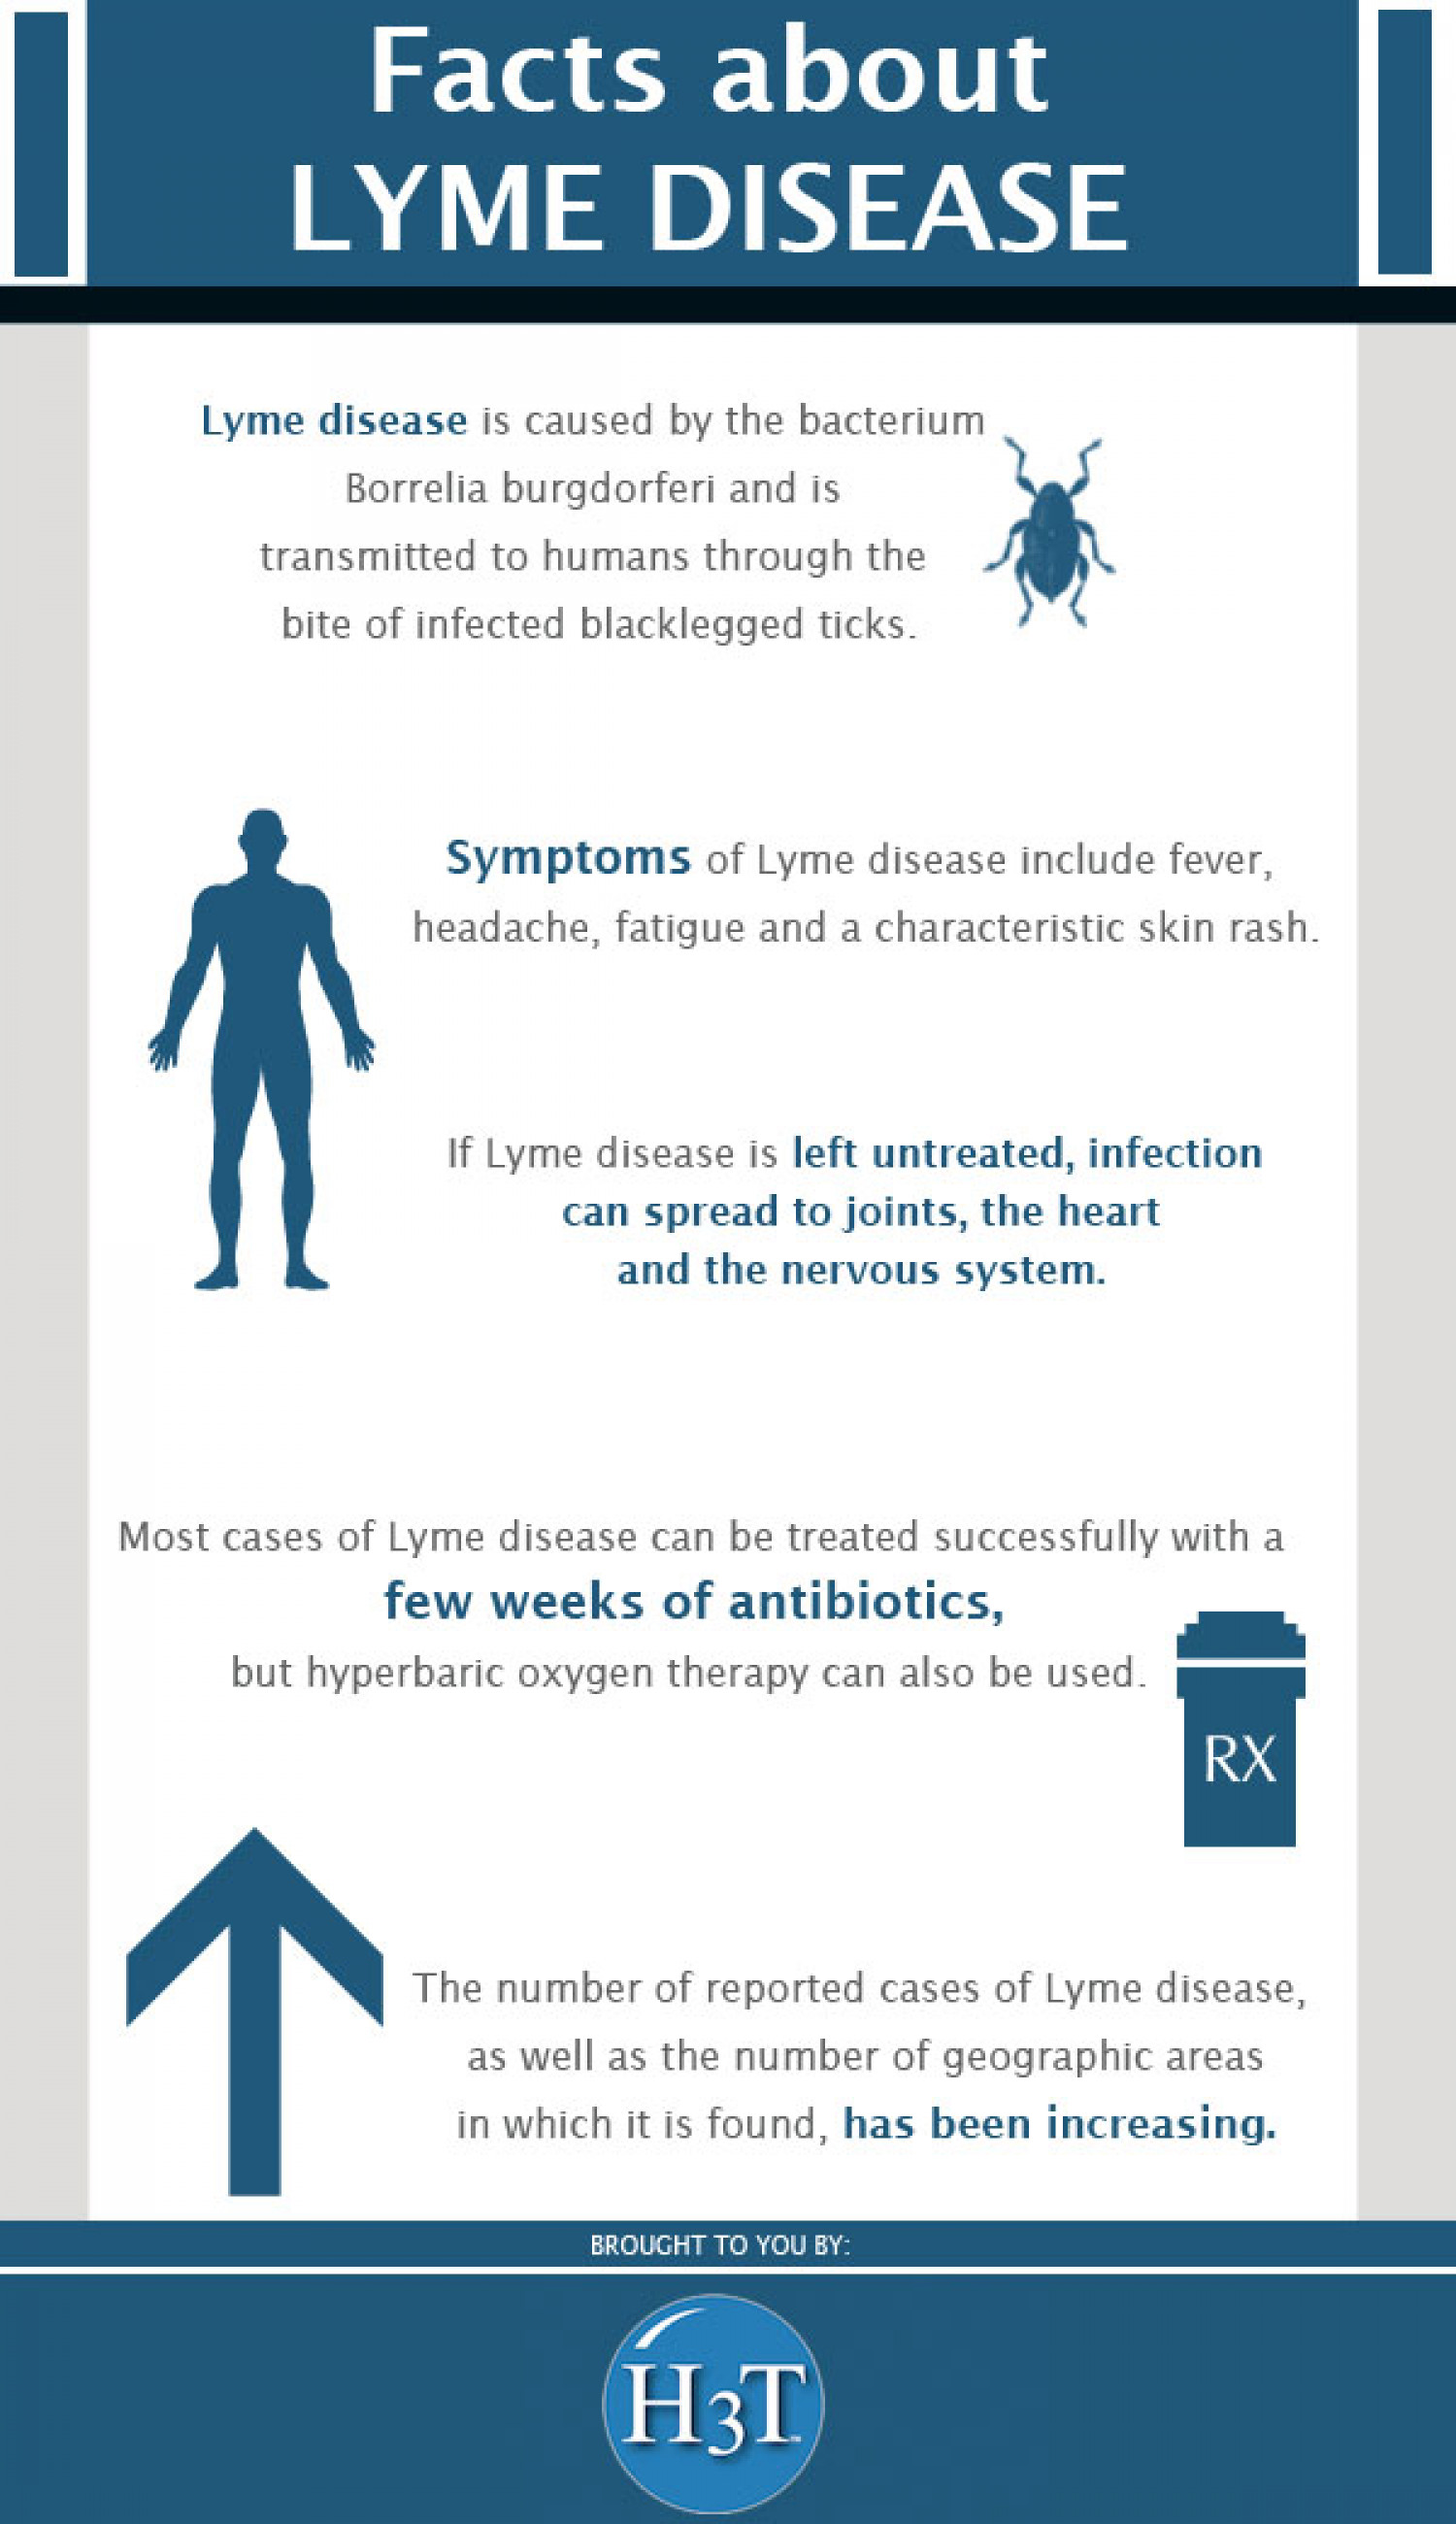 Facts About Lyme Disease Infographic